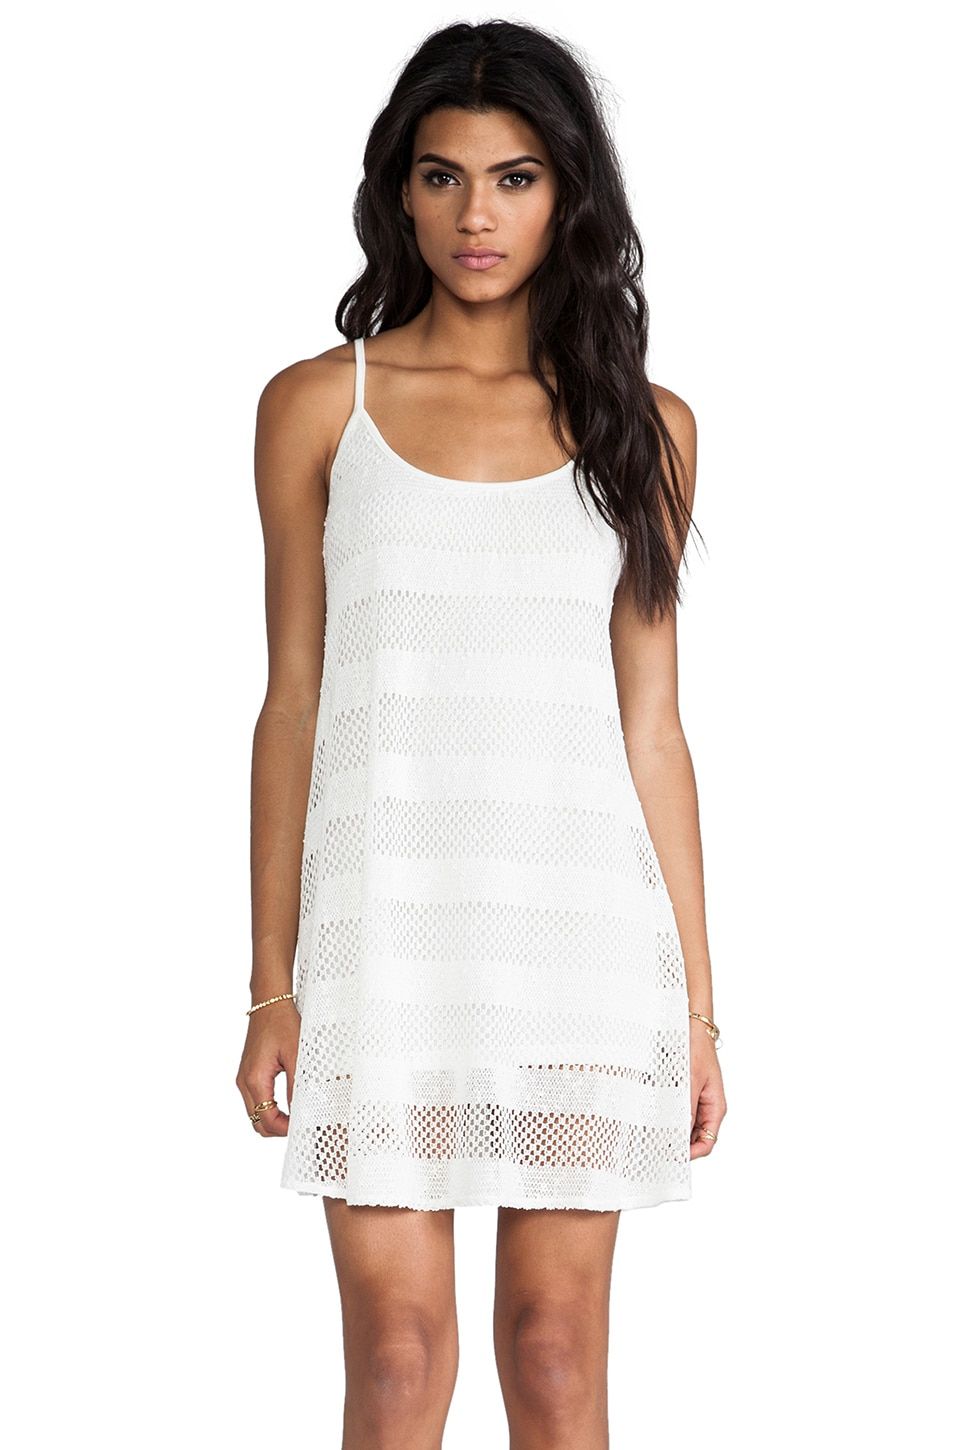 RVCA Bori Dress in White